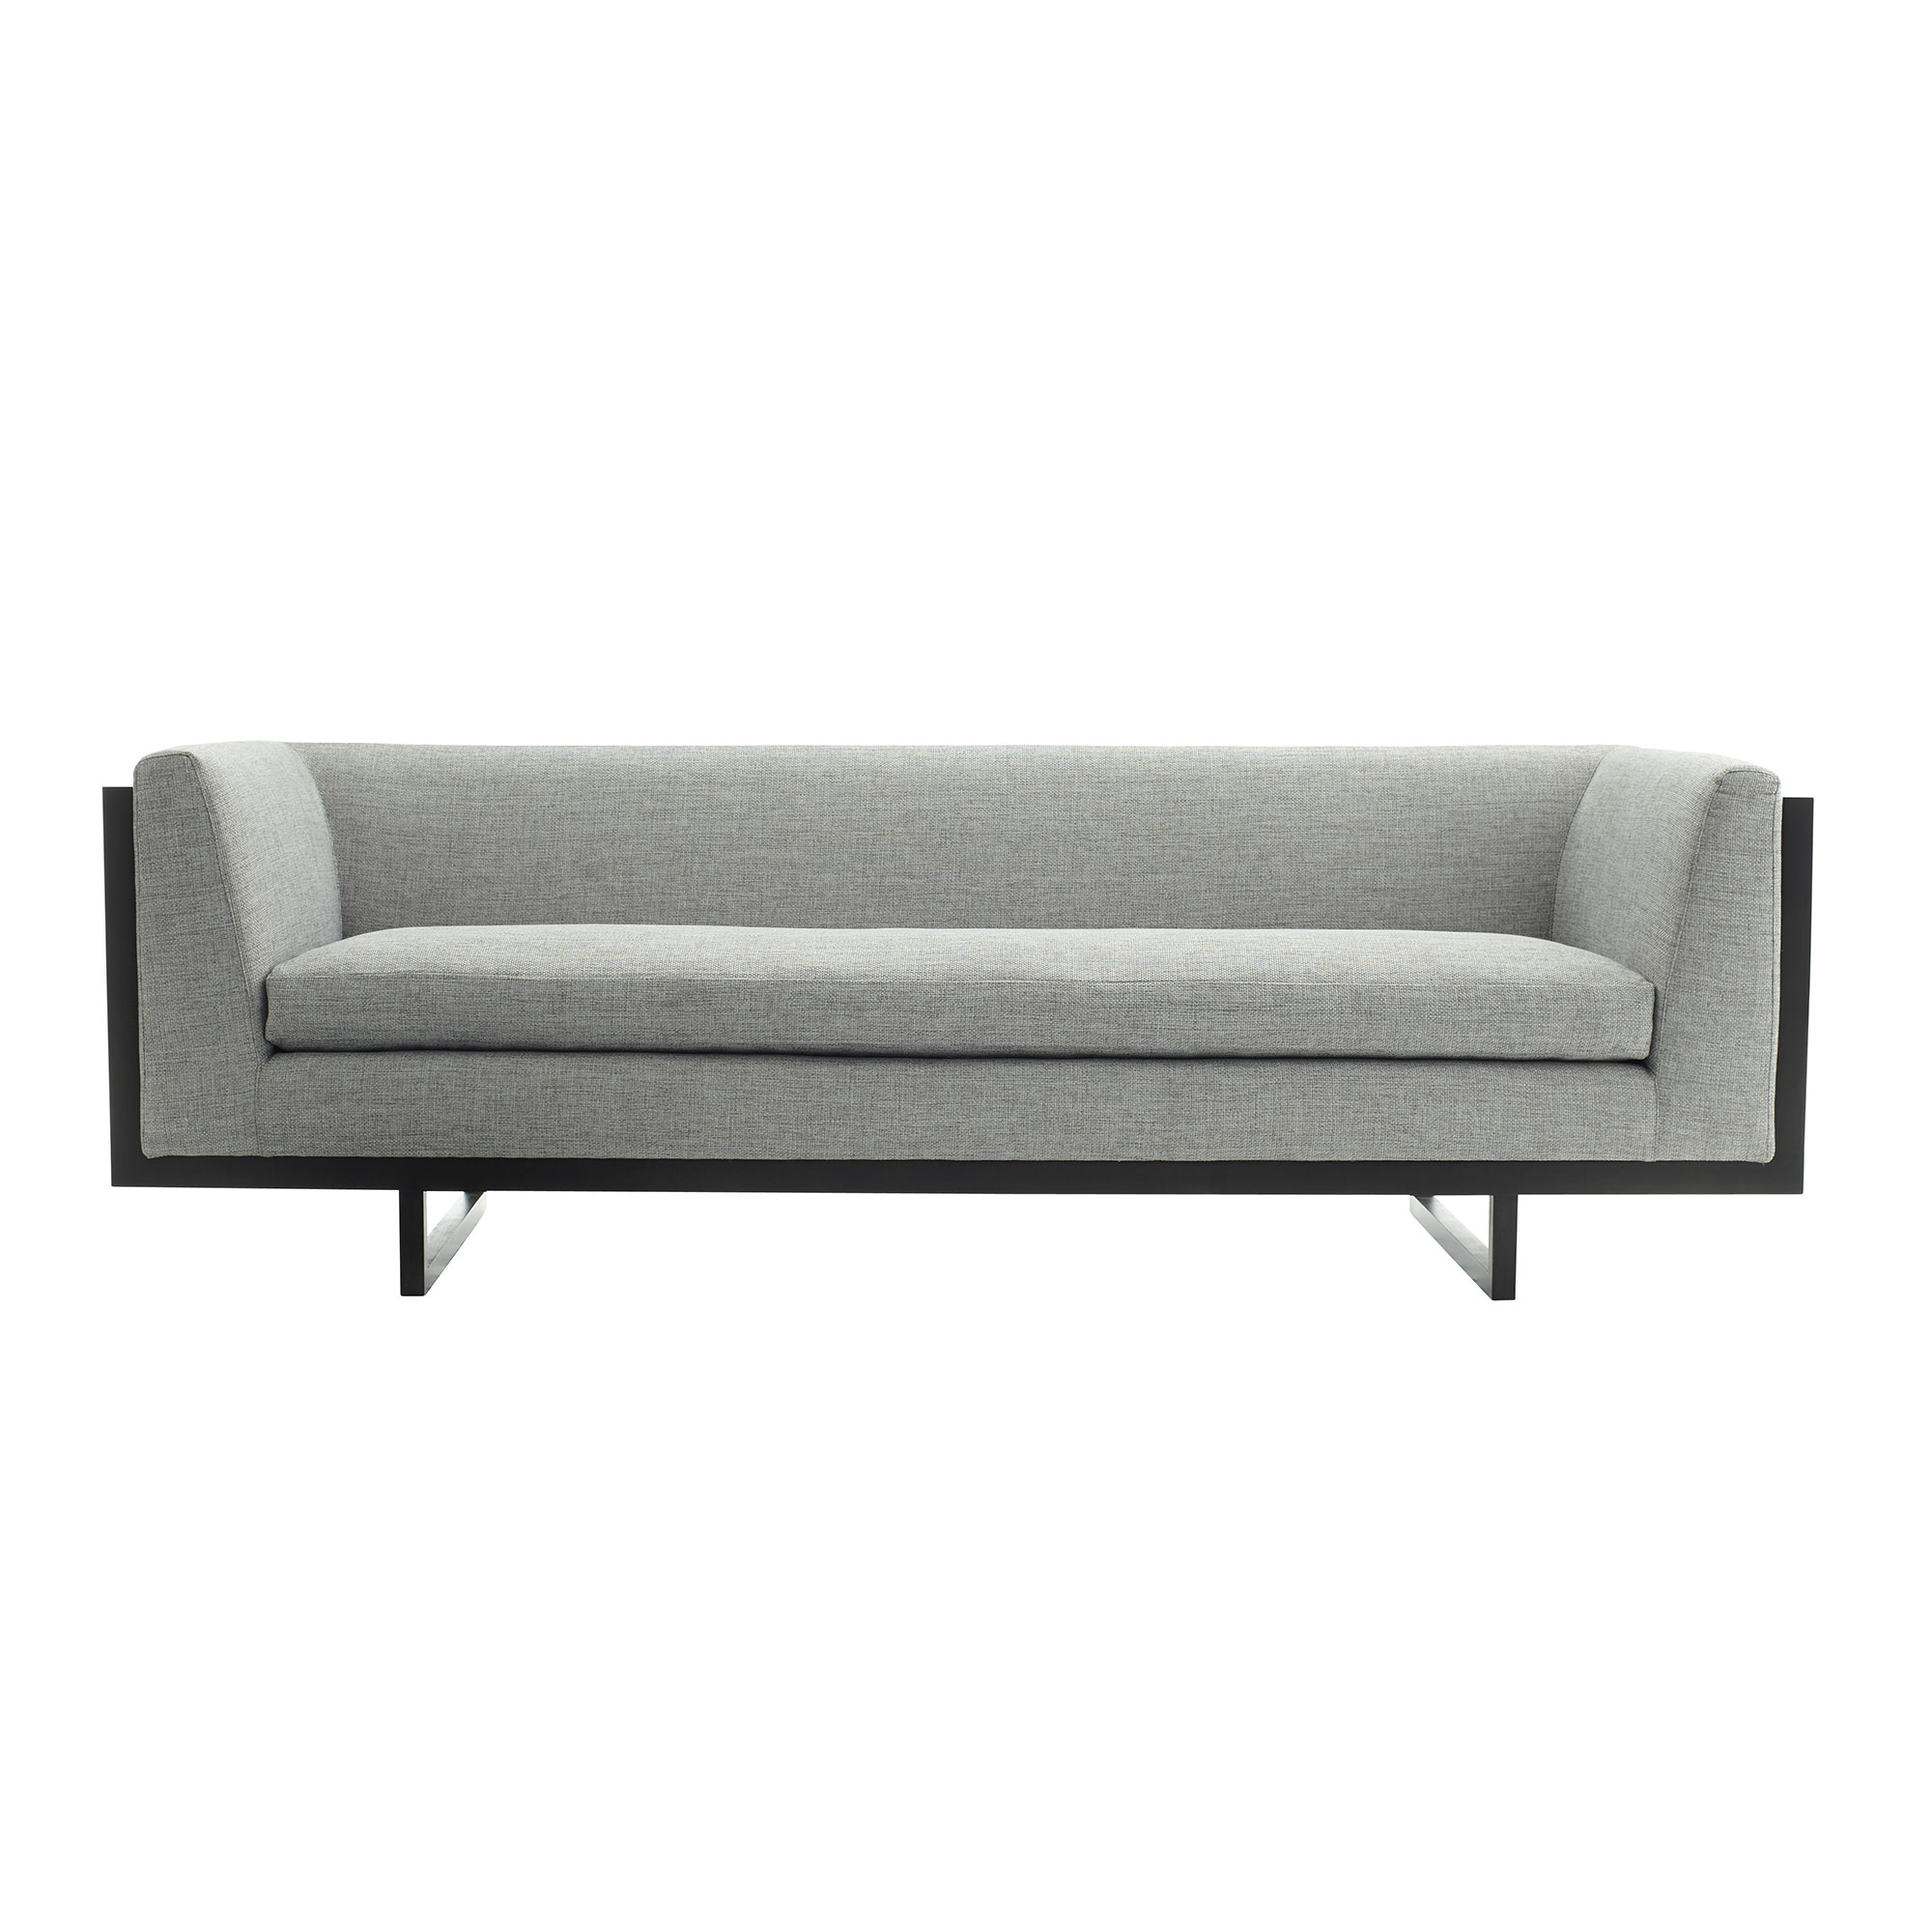 A couch from the collection